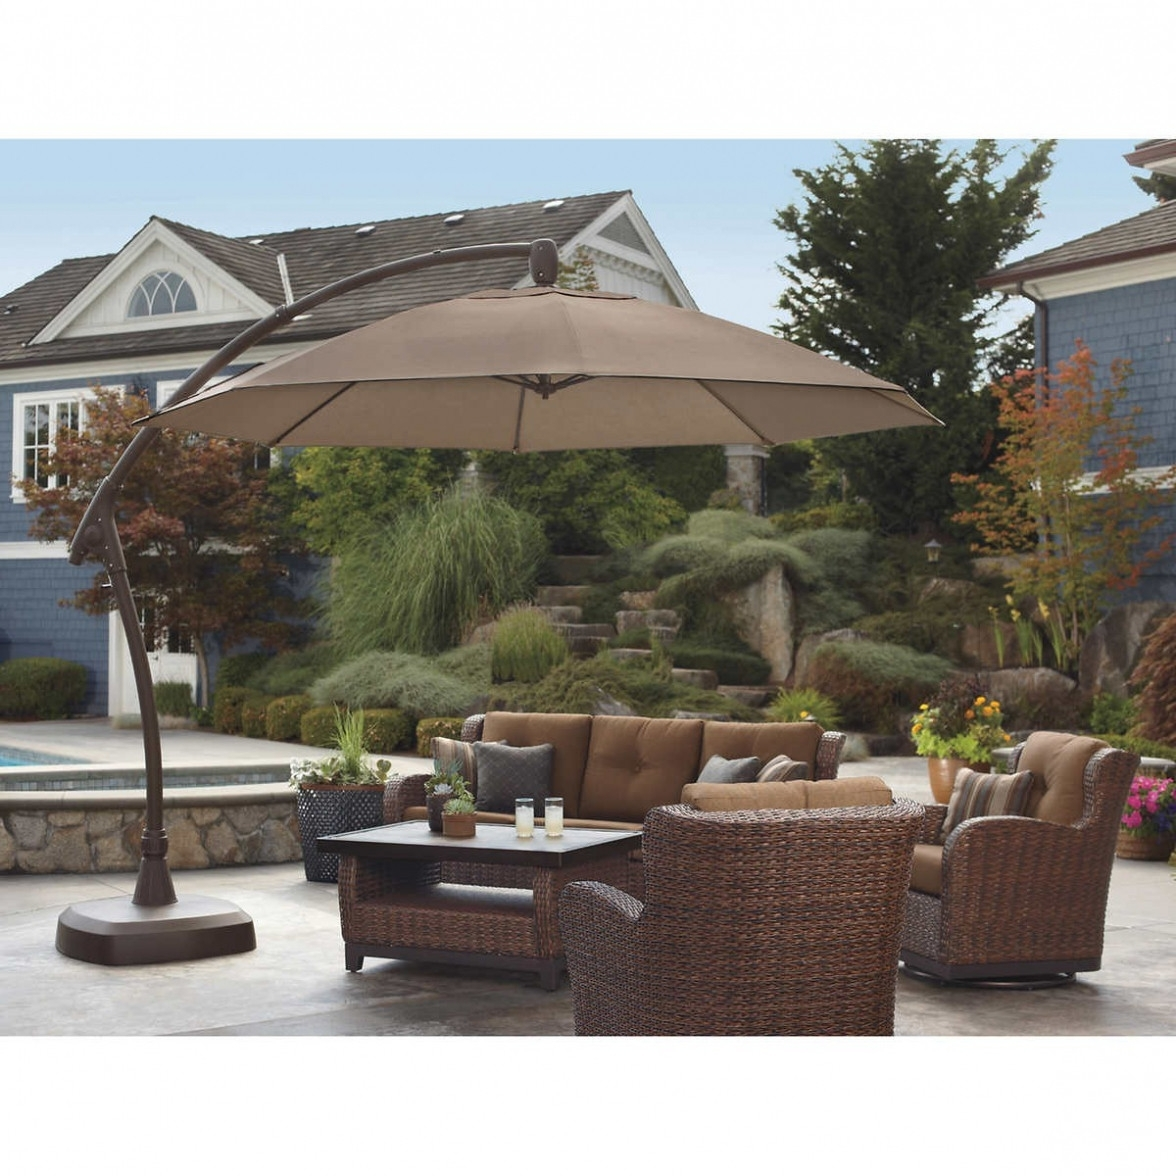 Costco Patio Umbrella – Home Design Ideas Throughout Well Liked Patio Umbrellas From Costco (View 4 of 20)